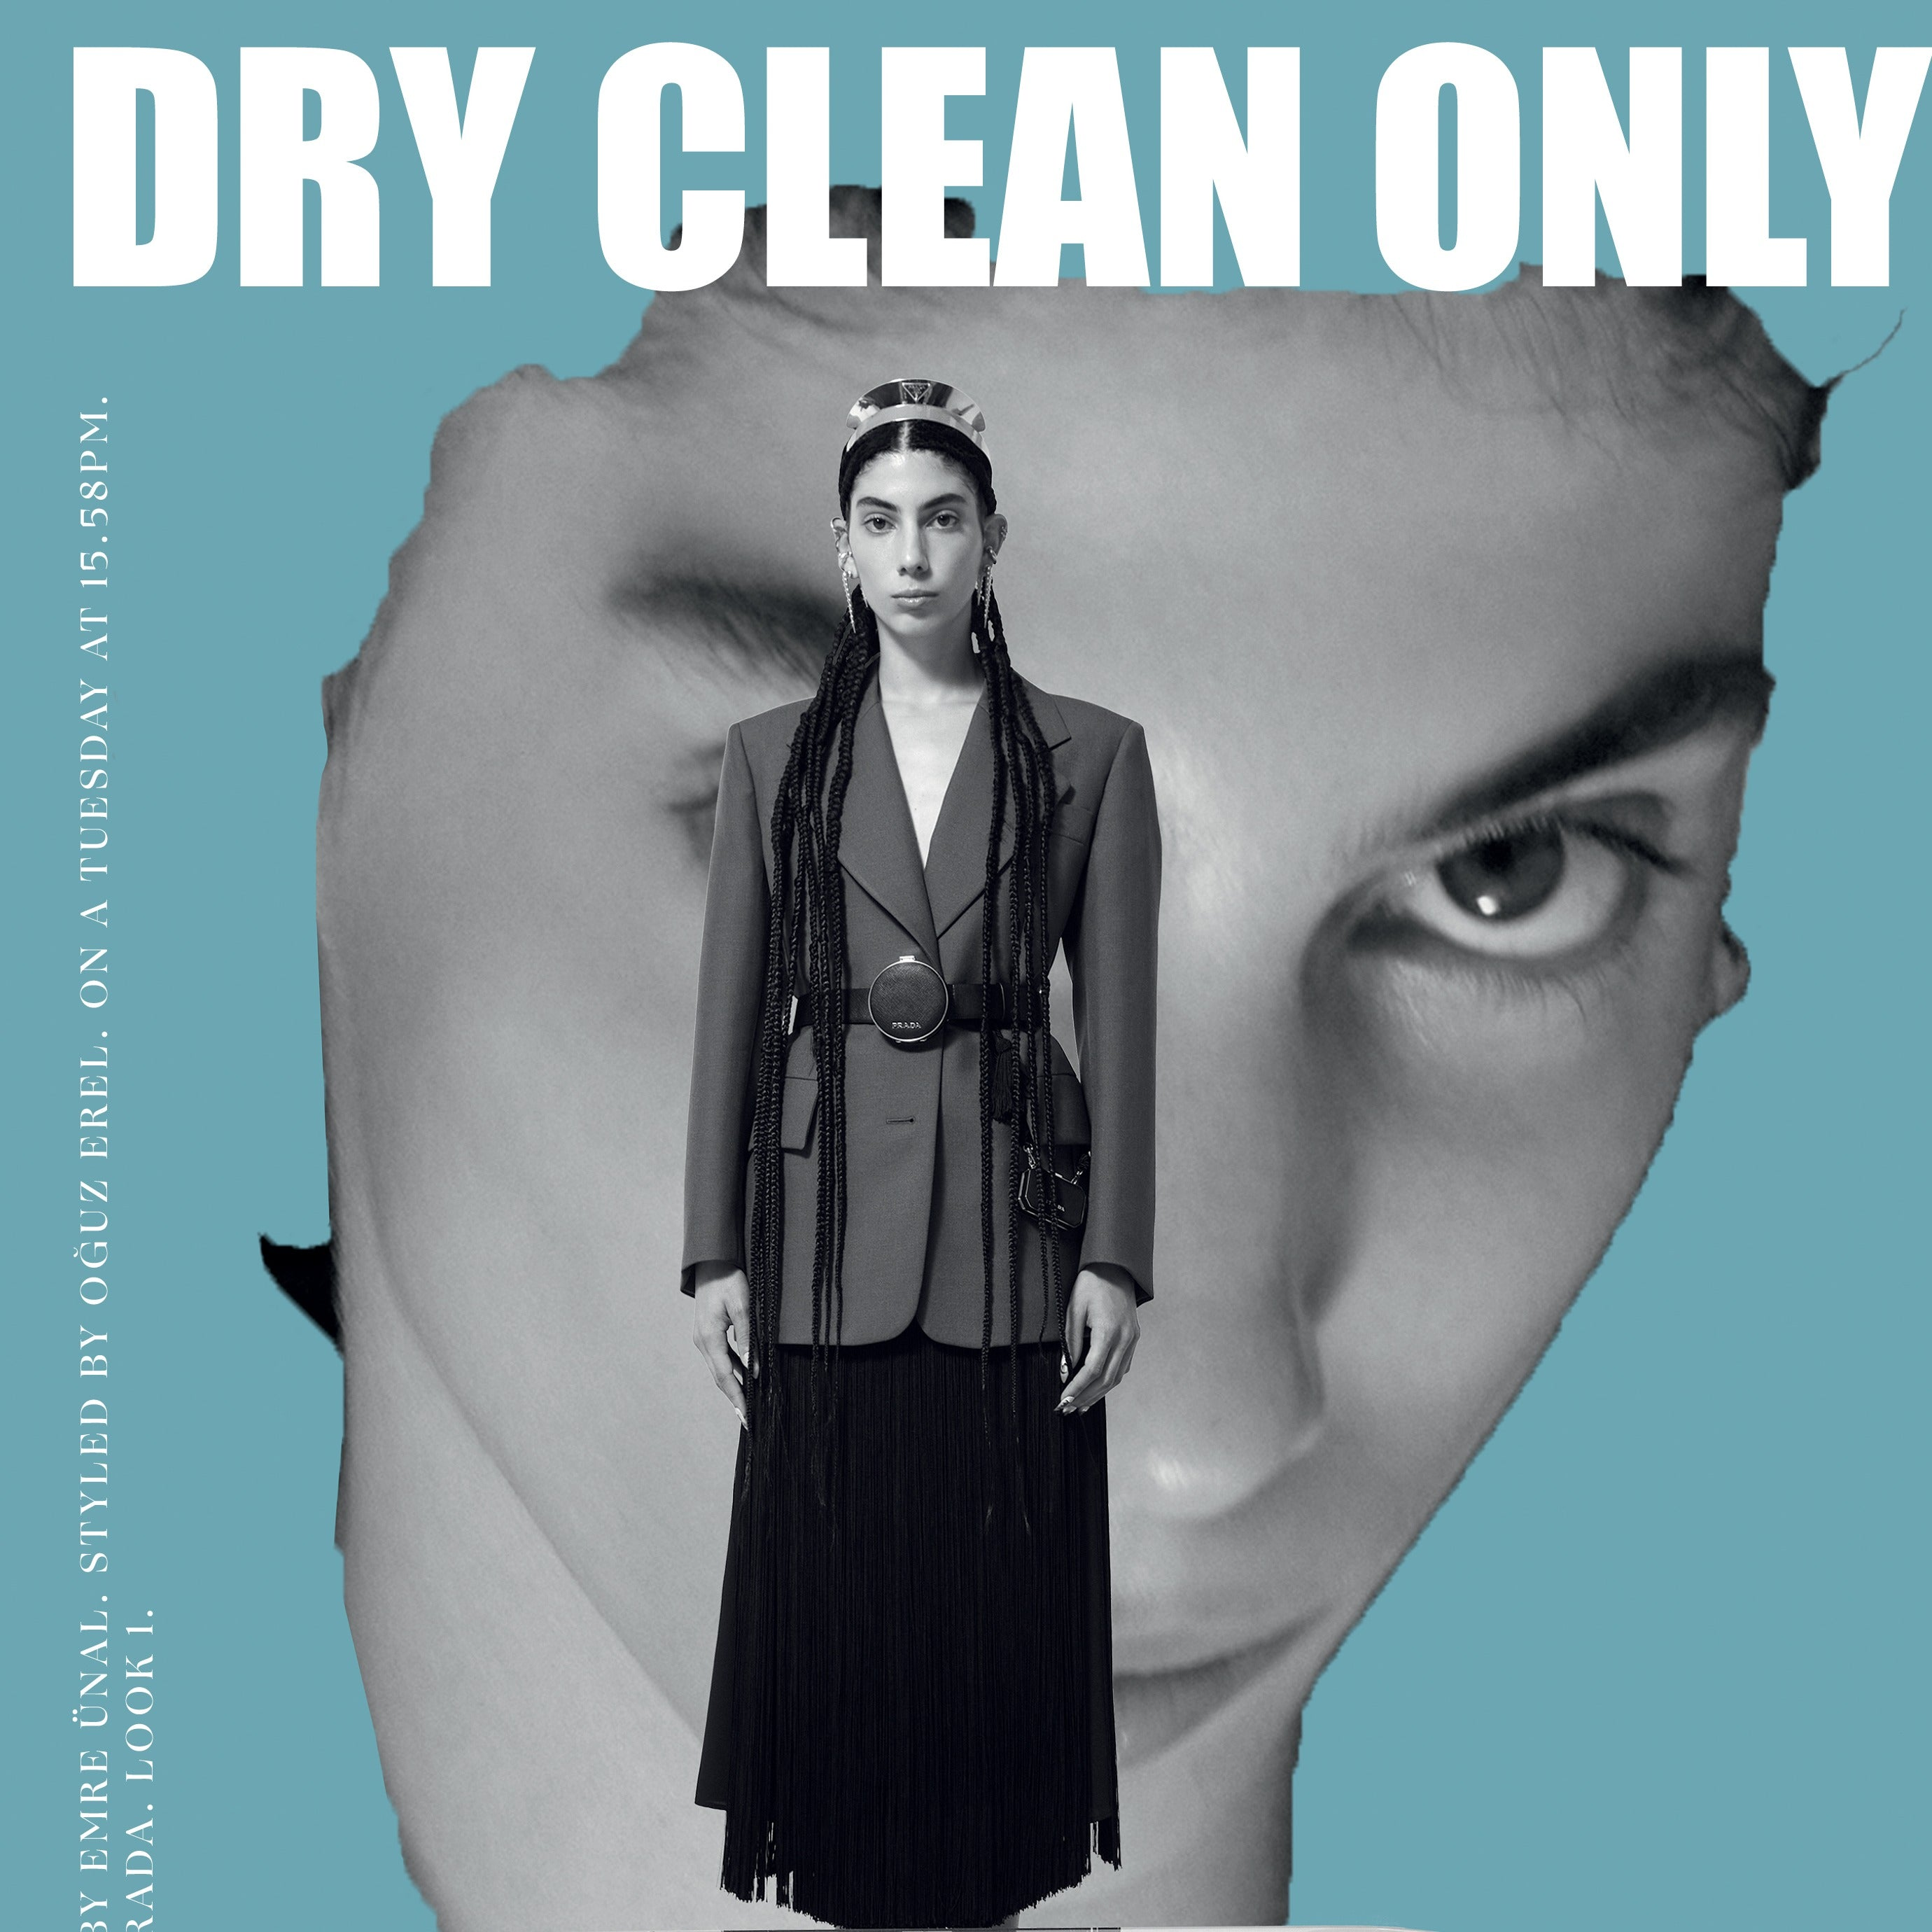 DRYCLEAN ONLY ISSUE 1